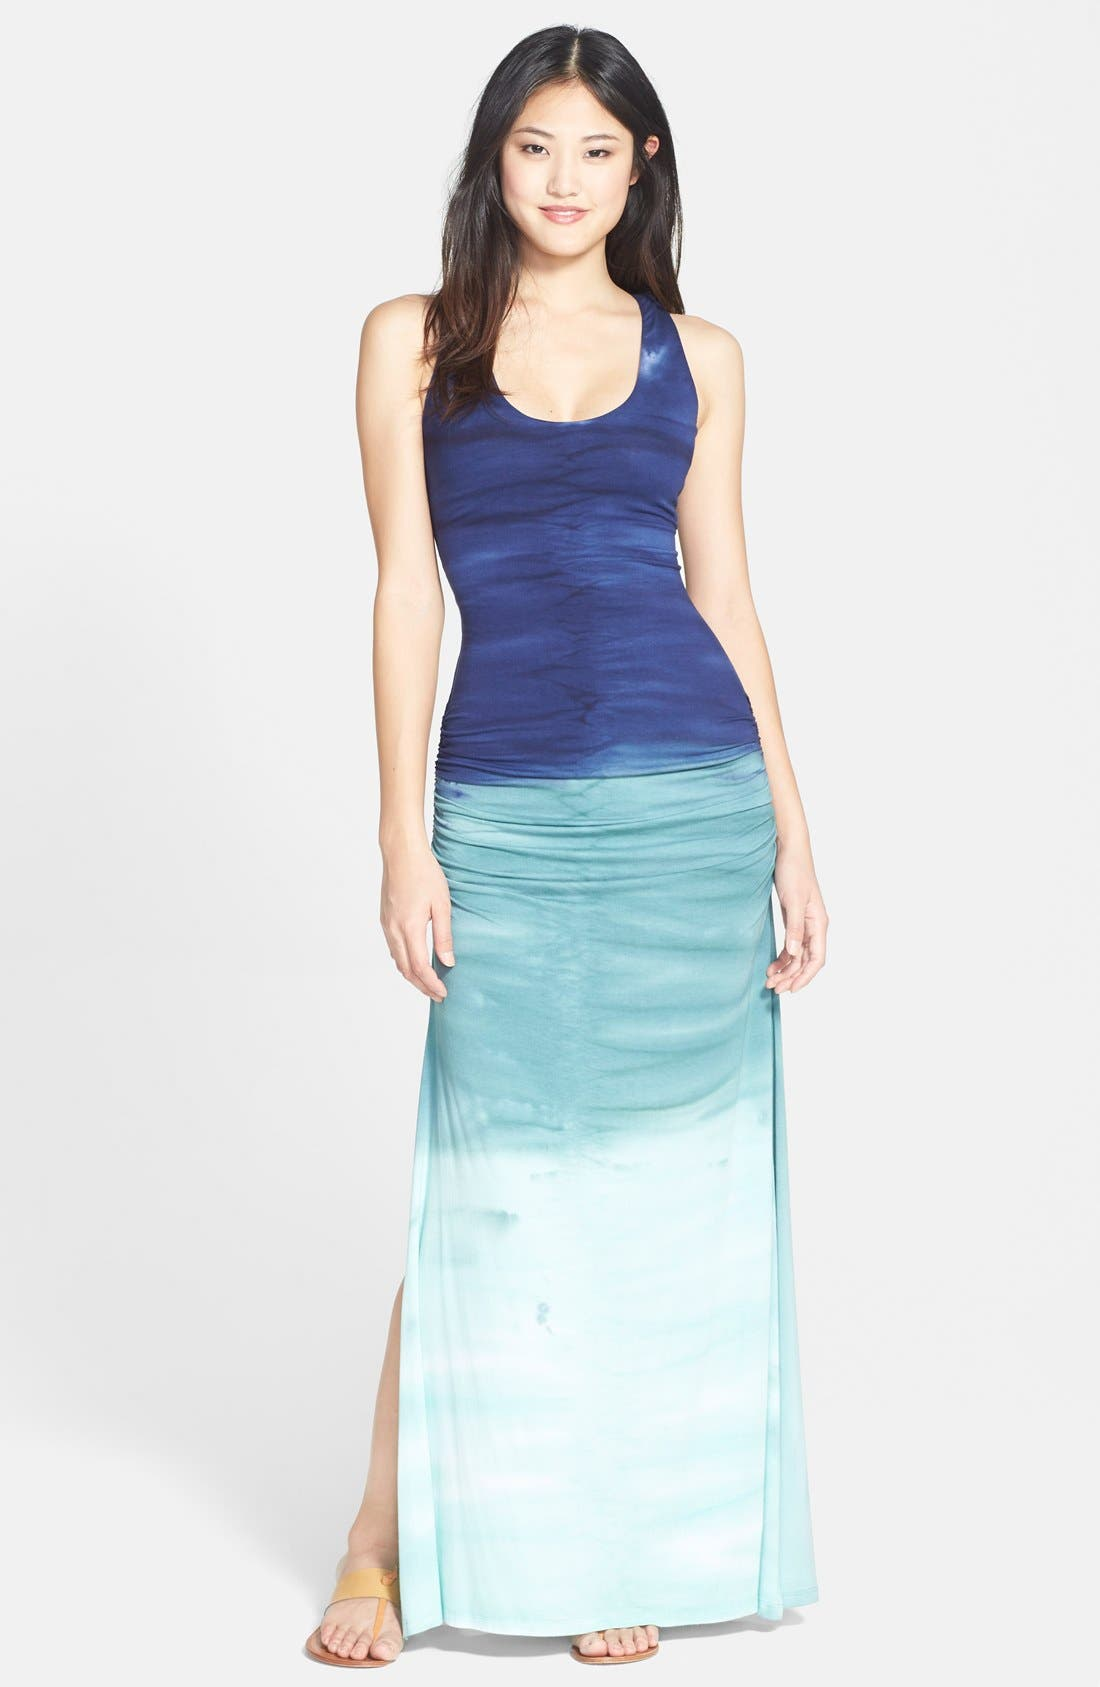 Alternate Image 1 Selected - Sky Crochet Back Ruched Tie-Dye Maxi Dress